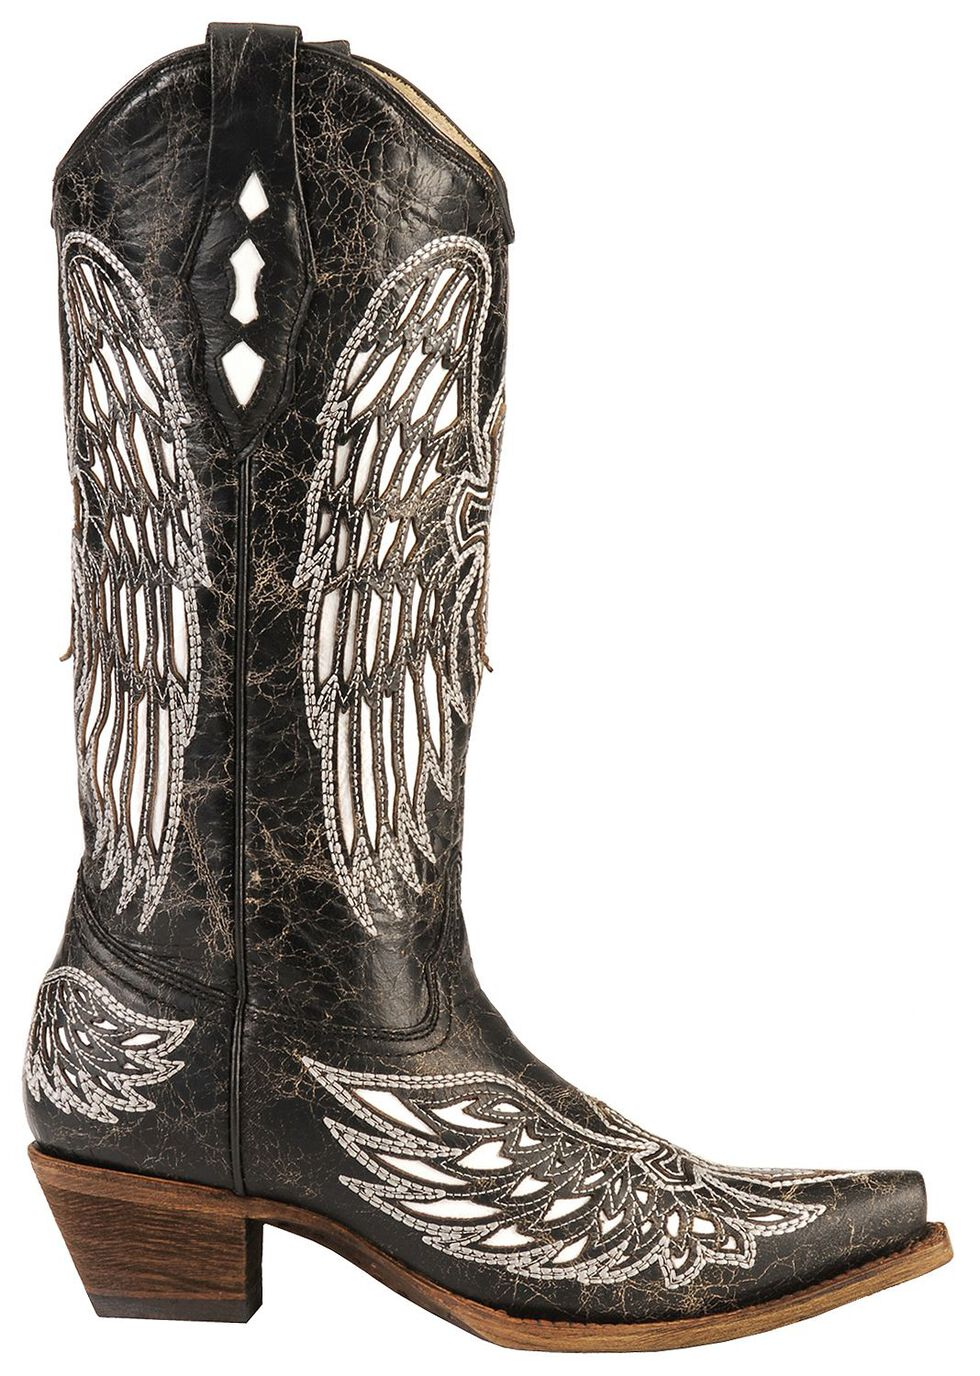 Corral White Wing Inlay & Cross Embroidery Distressed Cowgirl Boots - Snip Toe, Black, hi-res